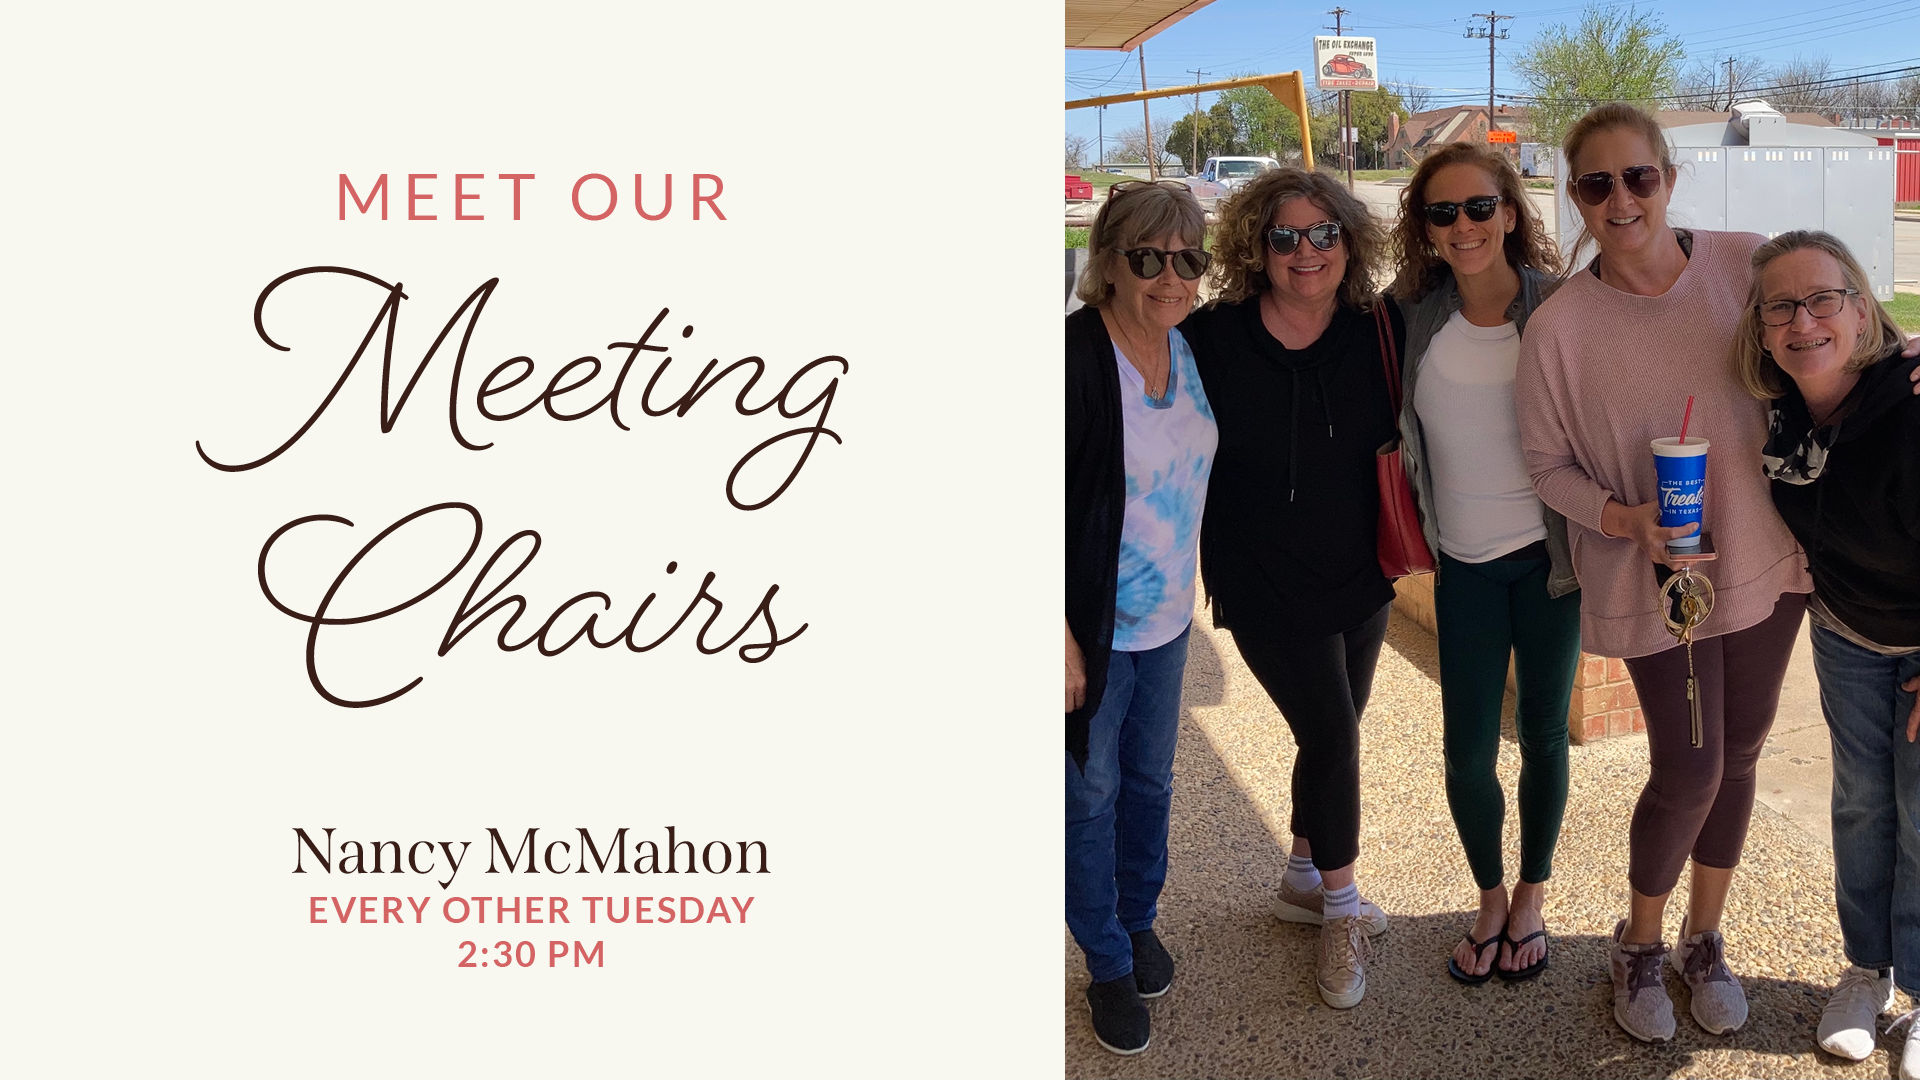 Meet Our Meeting Chairs Title with Nancy McMahon name and meeting time Every other Tuesday 2:30 PM next to photo of Nancy with with program alumnae and sponsees